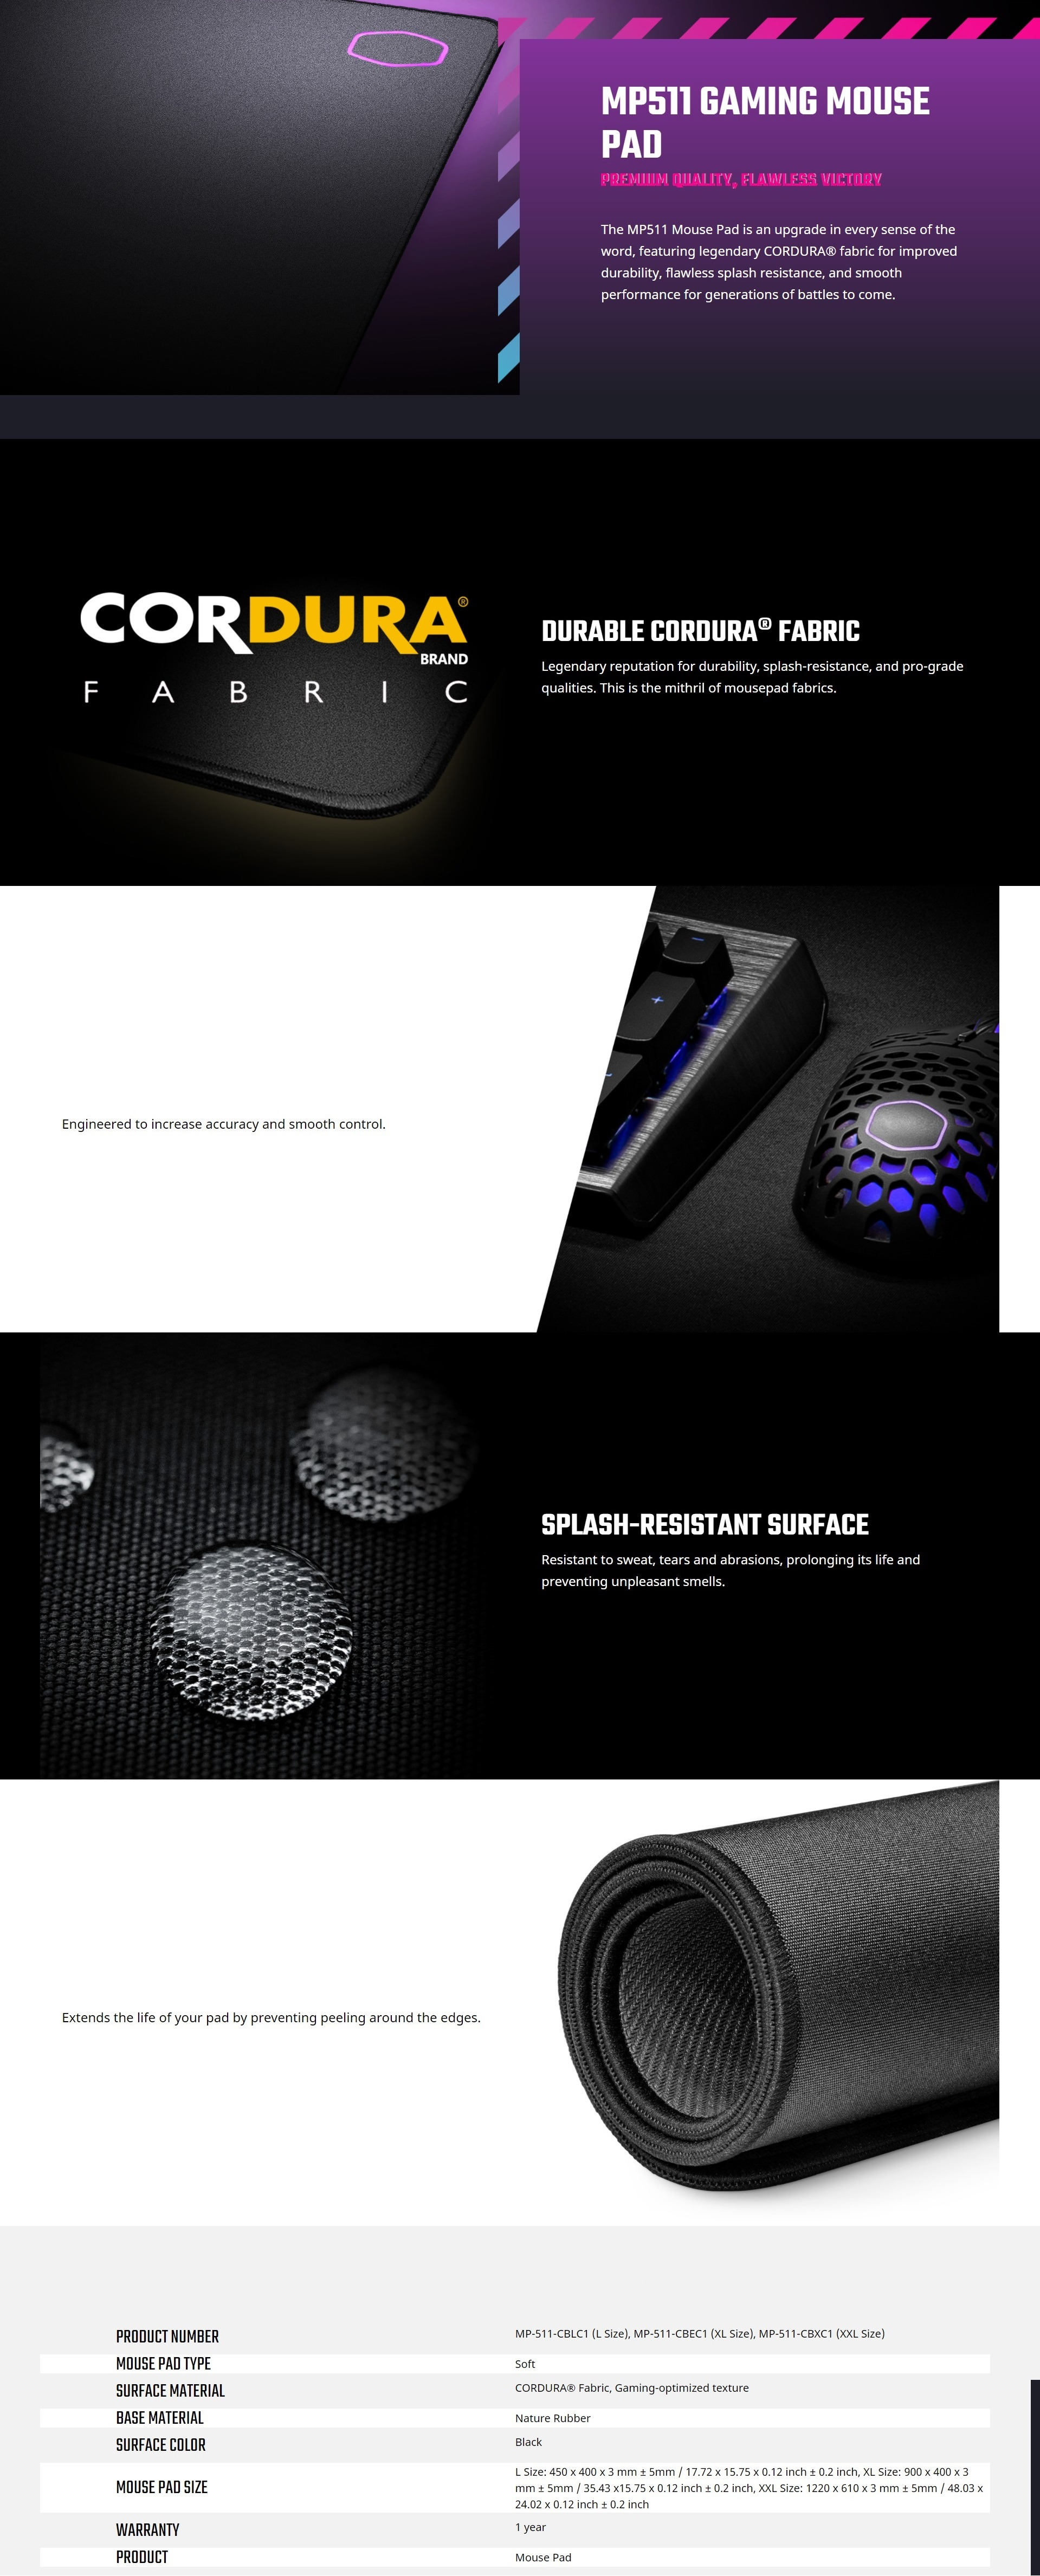 A large marketing image providing additional information about the product Cooler Master MasterAccessory MP511 Large Mousemat - Additional alt info not provided